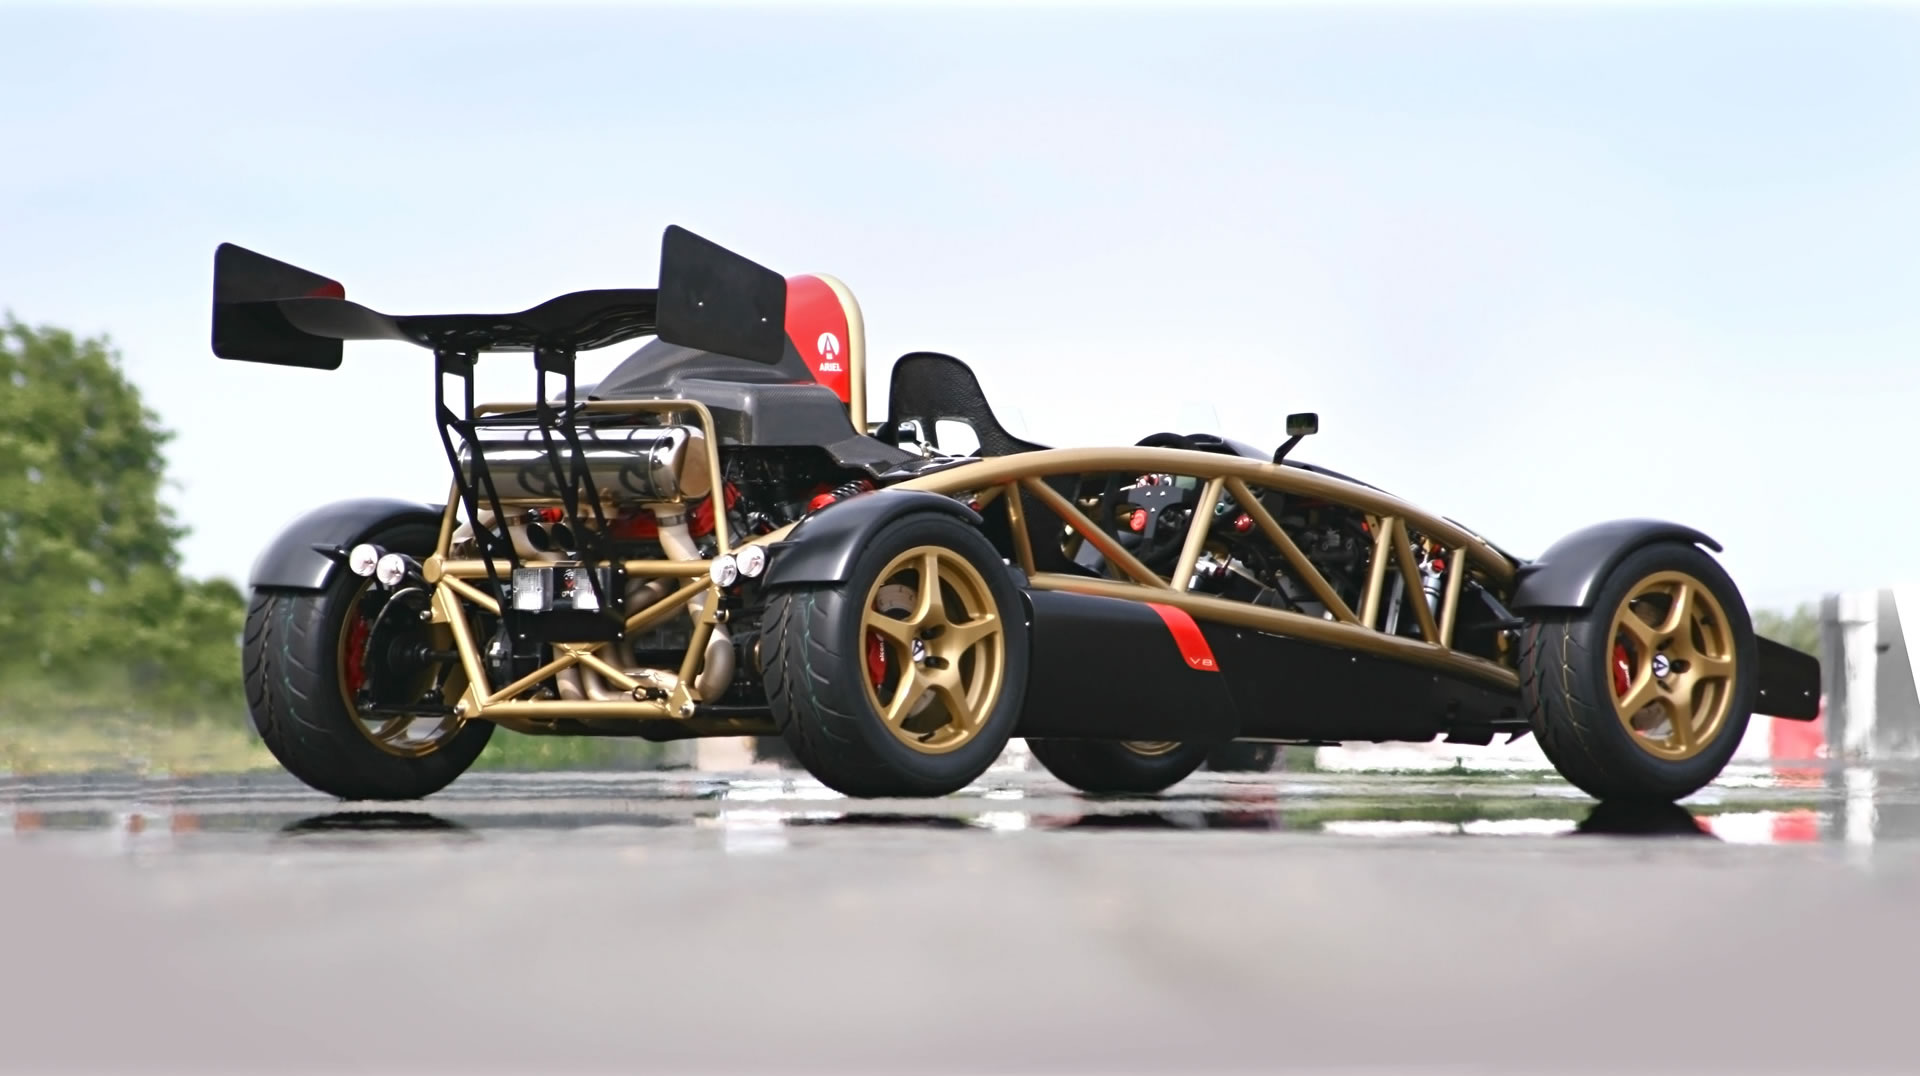 Ariel Atom Wallpaper and Background Image   1920x1076   ID